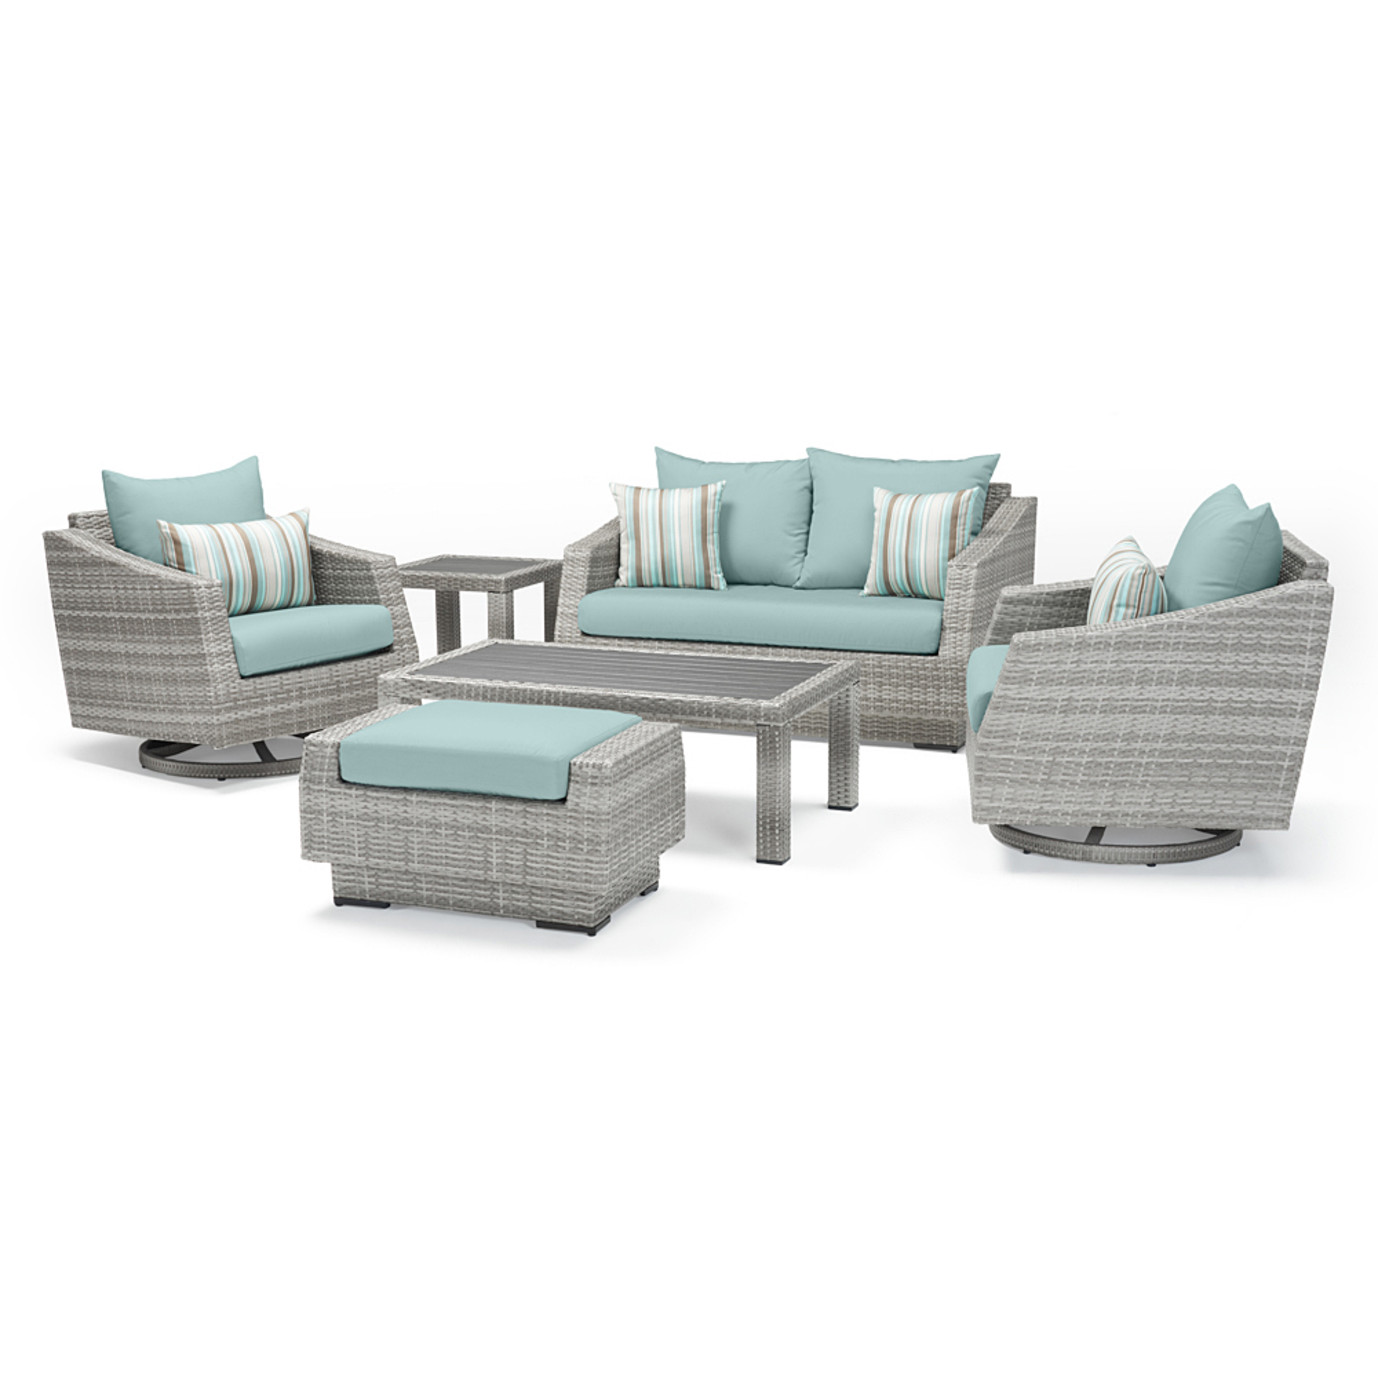 Cannes Deluxe 6 Piece Love & Motion Club Seating Set - Bliss Blue